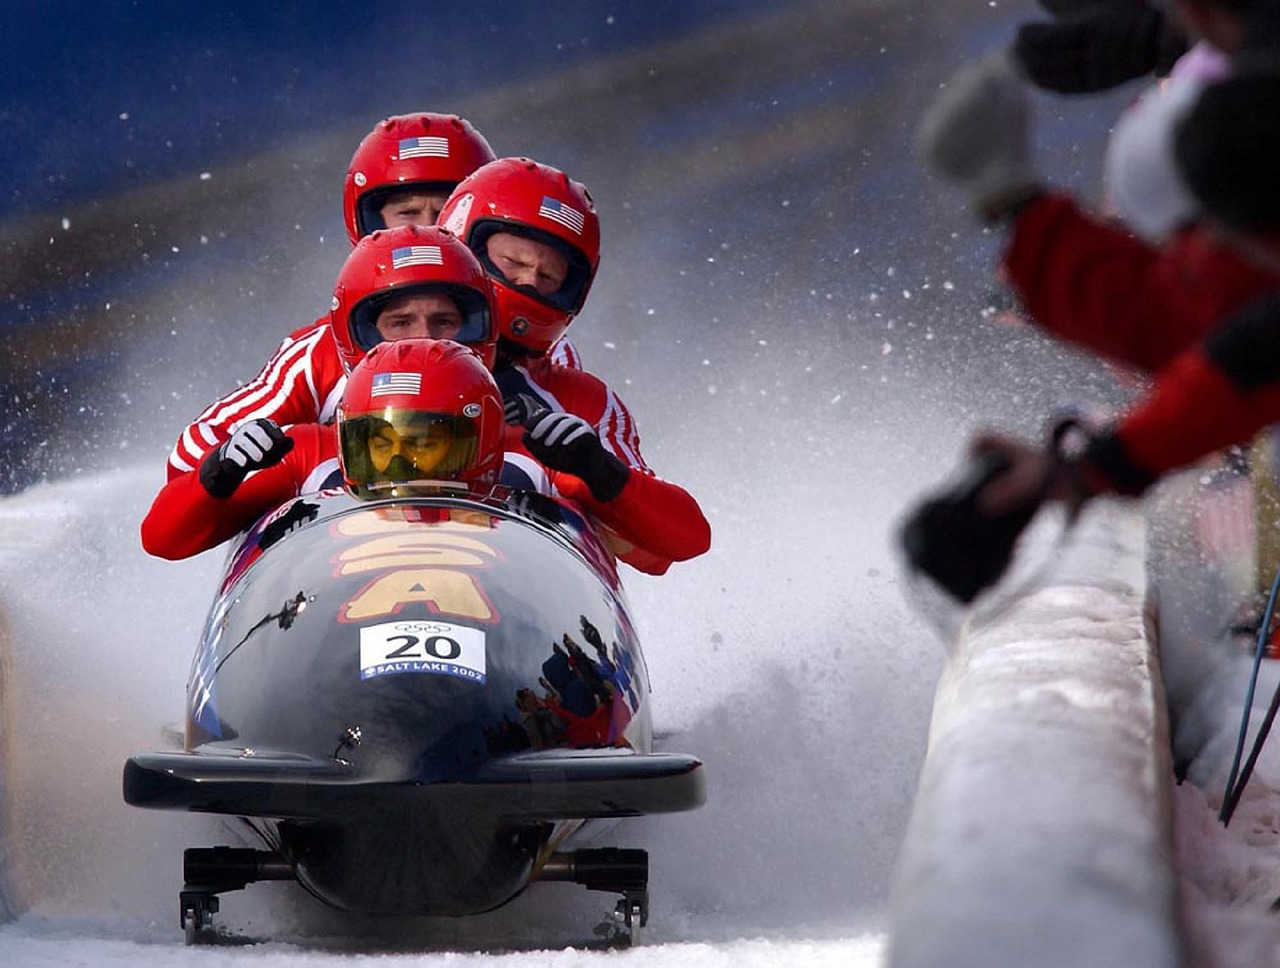 bobsled-643397_1280